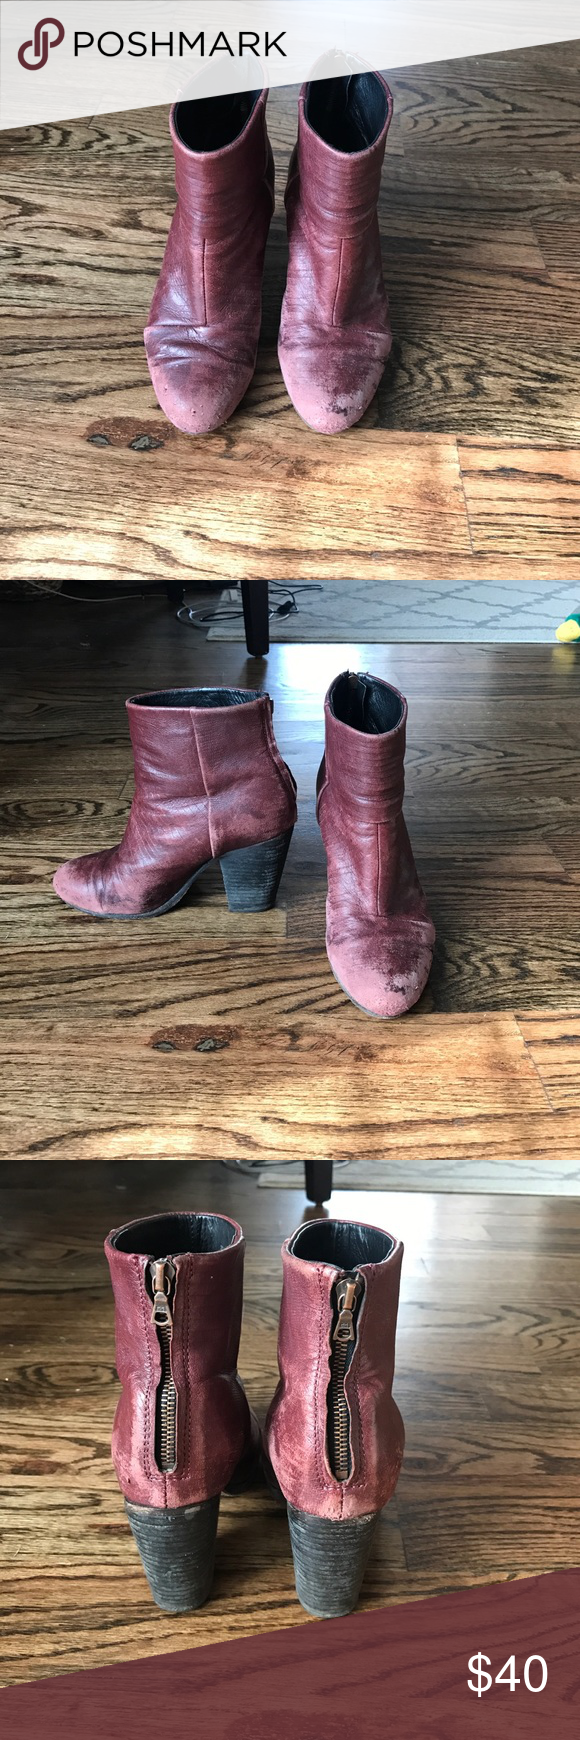 rag & bone booties Maroon rag & bone booties. Not new condition. Have worn for a few seasons. Still wearable and comfortable, zipper works, heels are fine. Leather faded and peeling a bit in front. rag & bone Shoes Ankle Boots & Booties